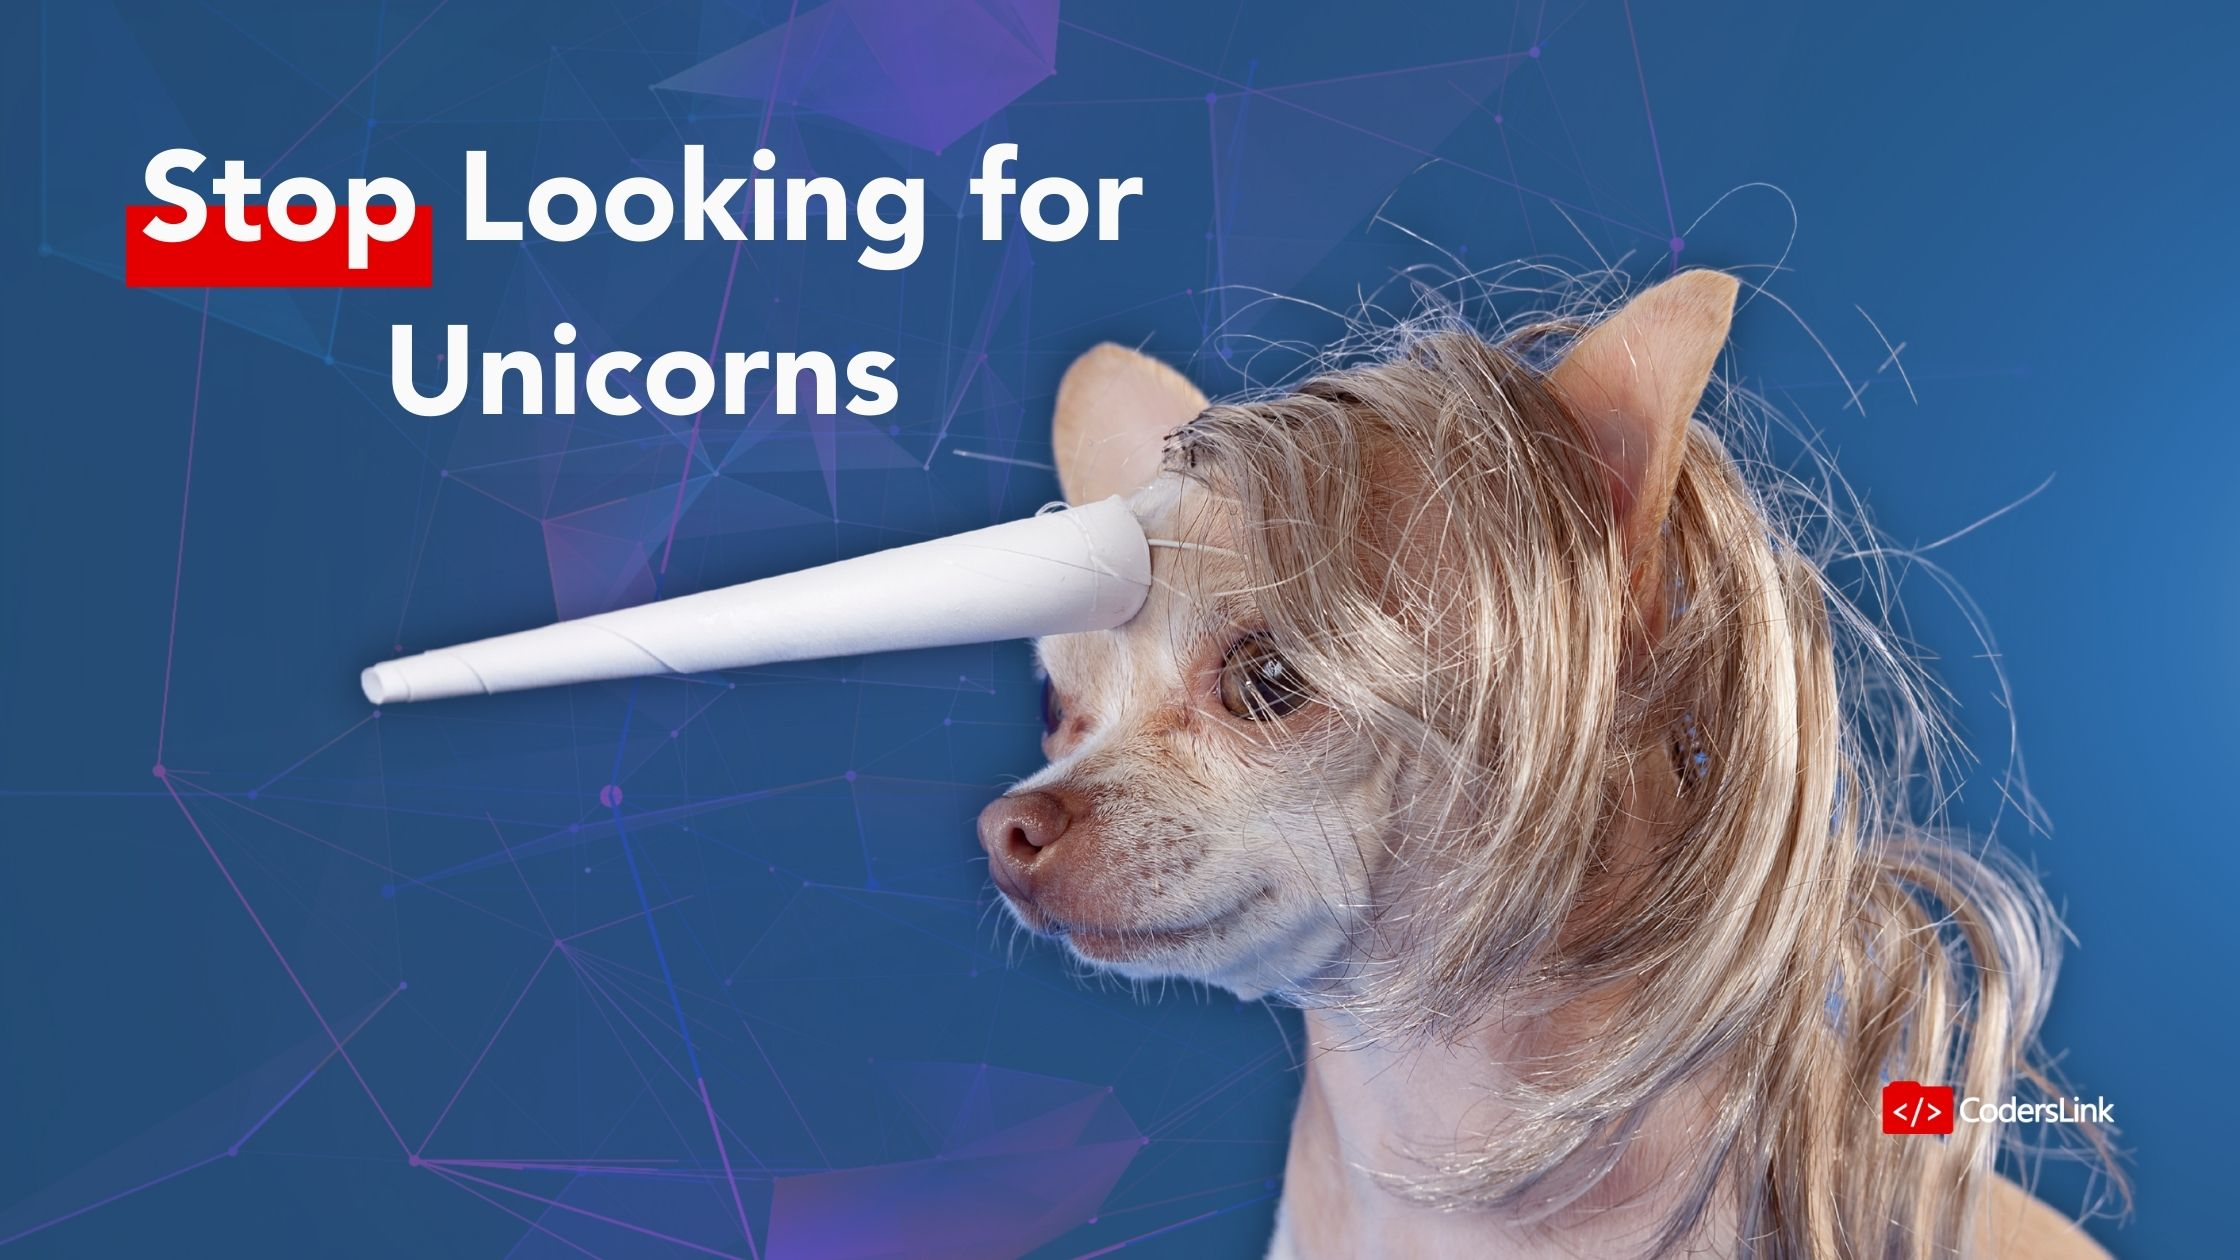 You can't find skilled candidates because you are looking for unicorns